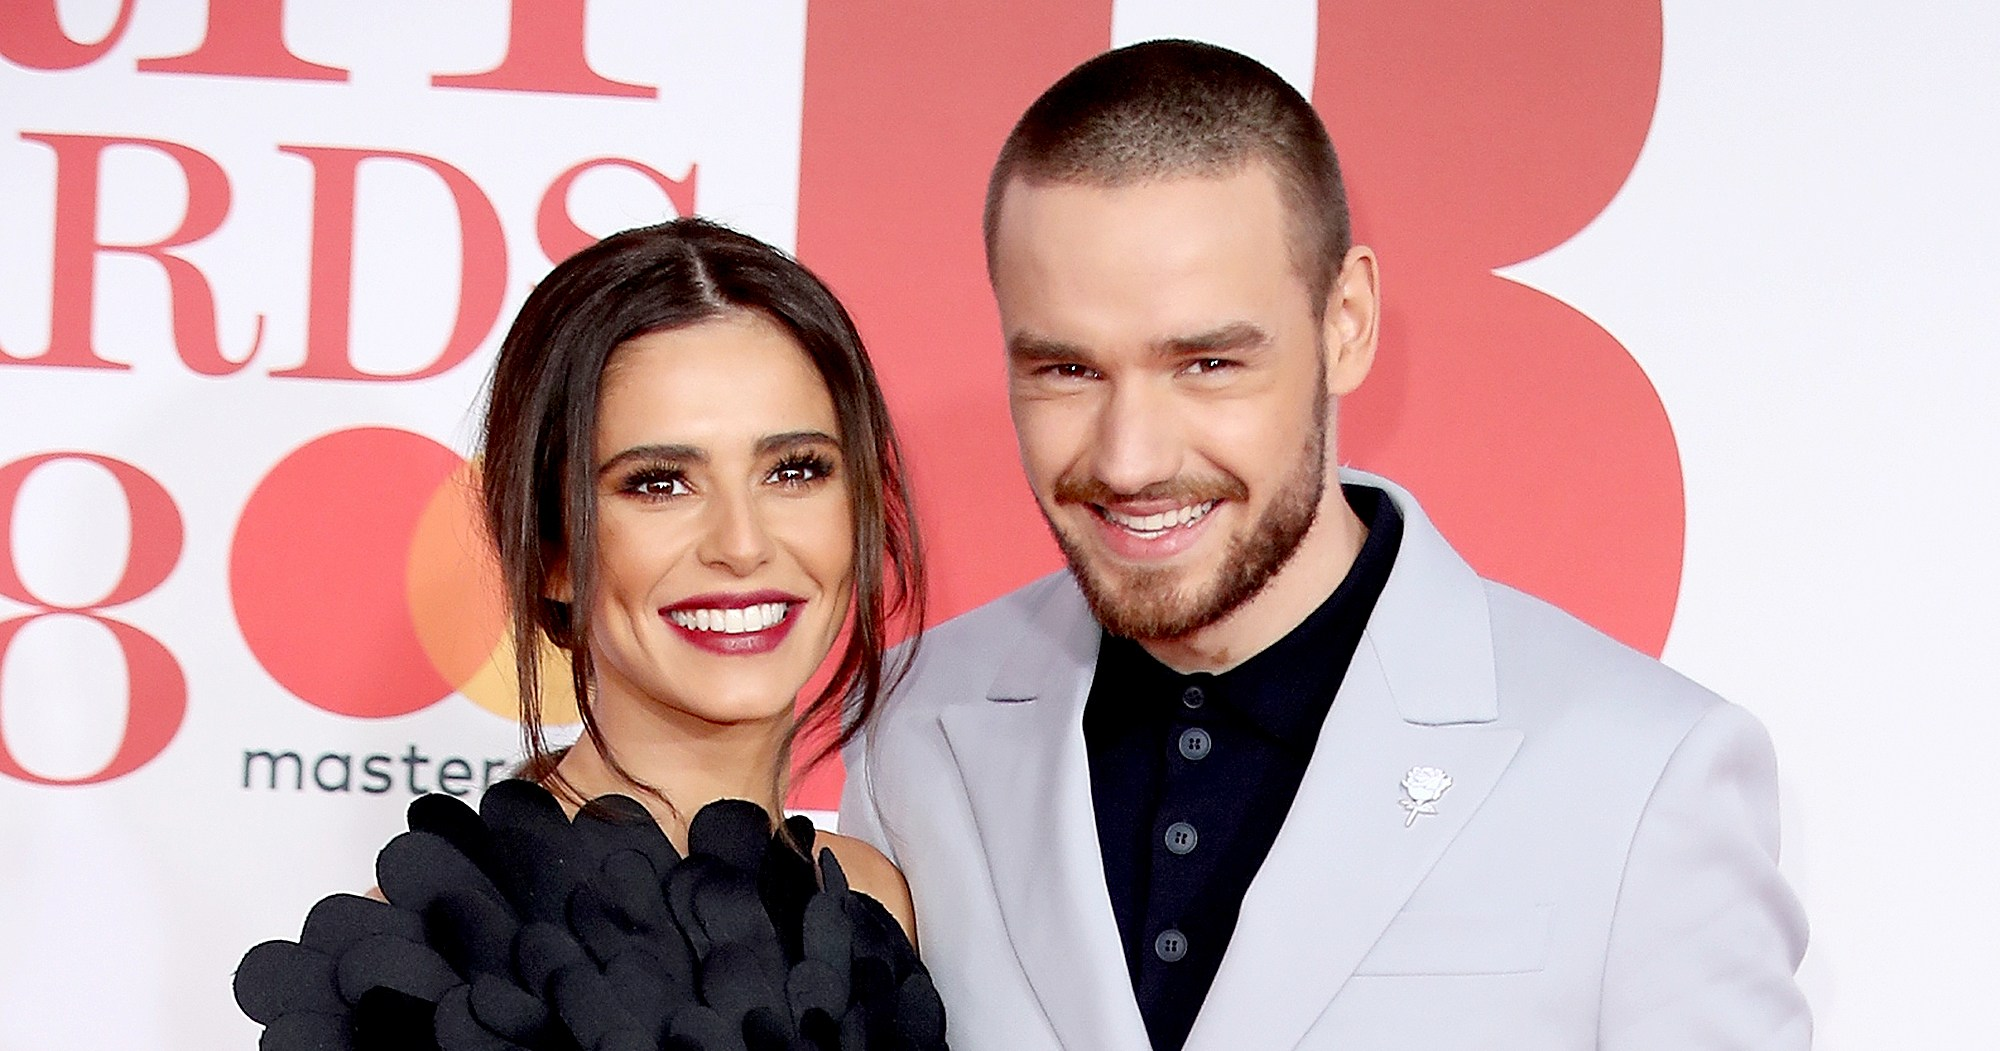 Cheryl Cole Opens Up About Coparenting With 'Great Dad' Liam Payne